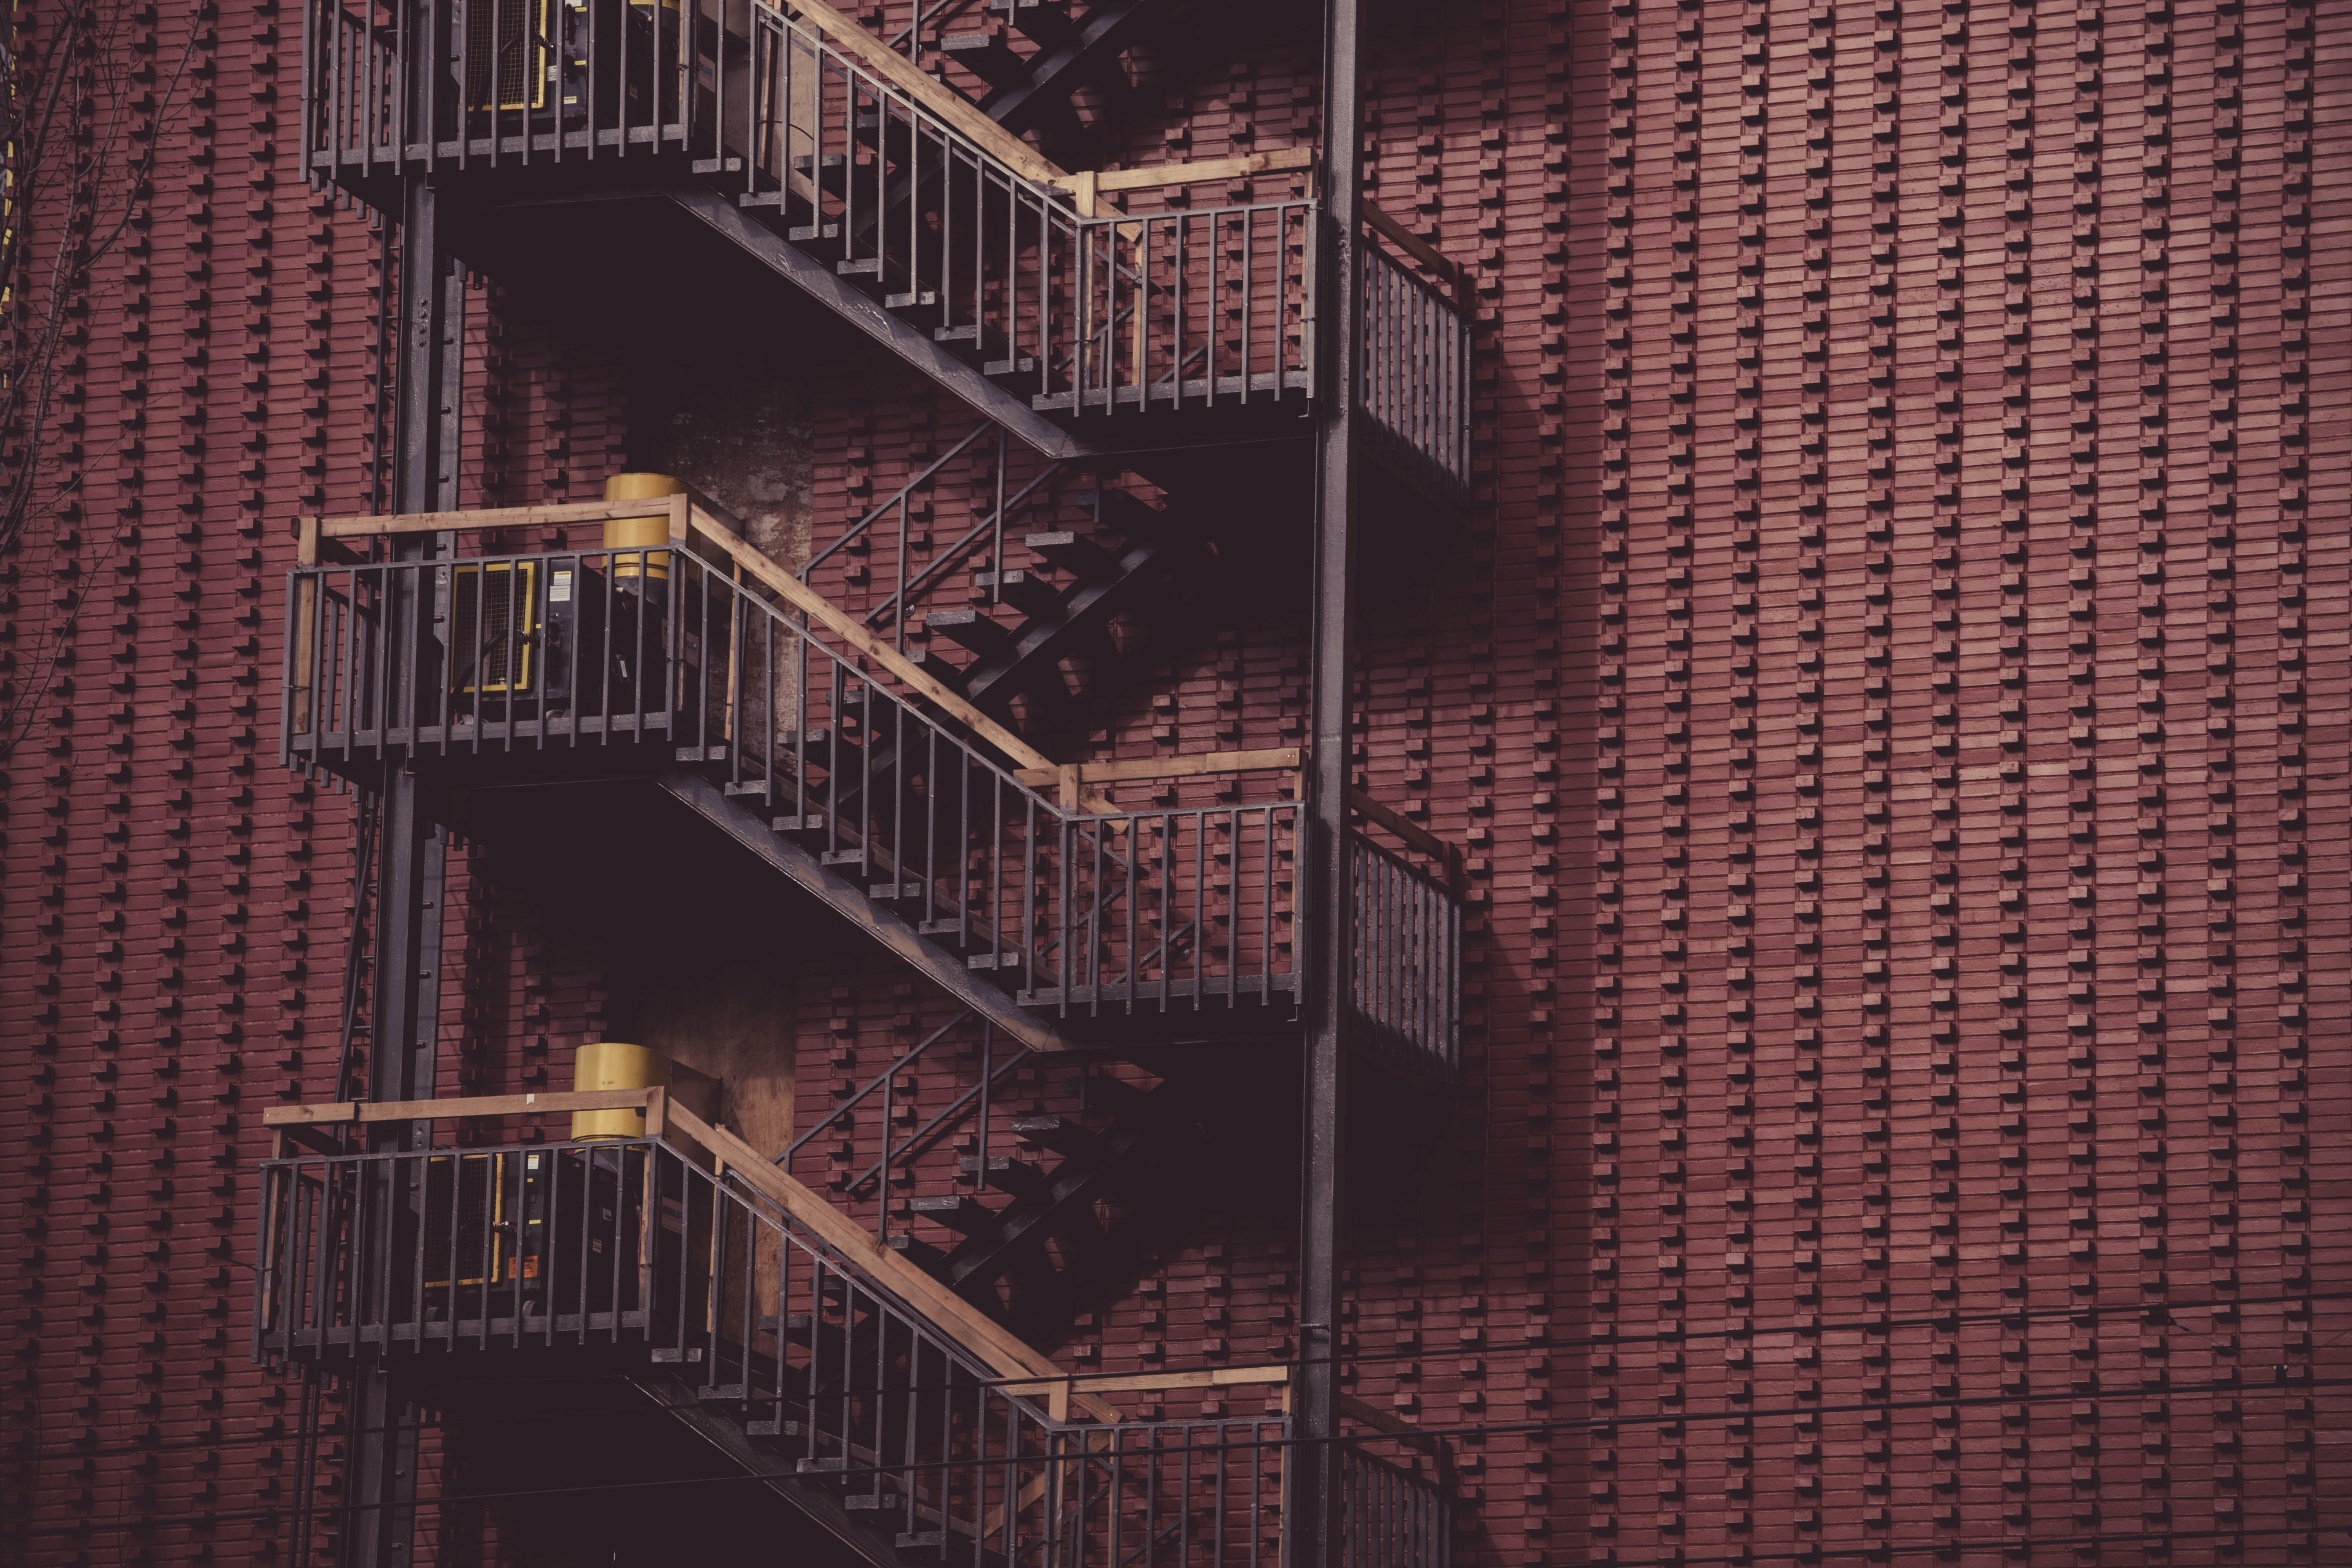 Free stock photo of building, architecture, ladder, fire exit ladders